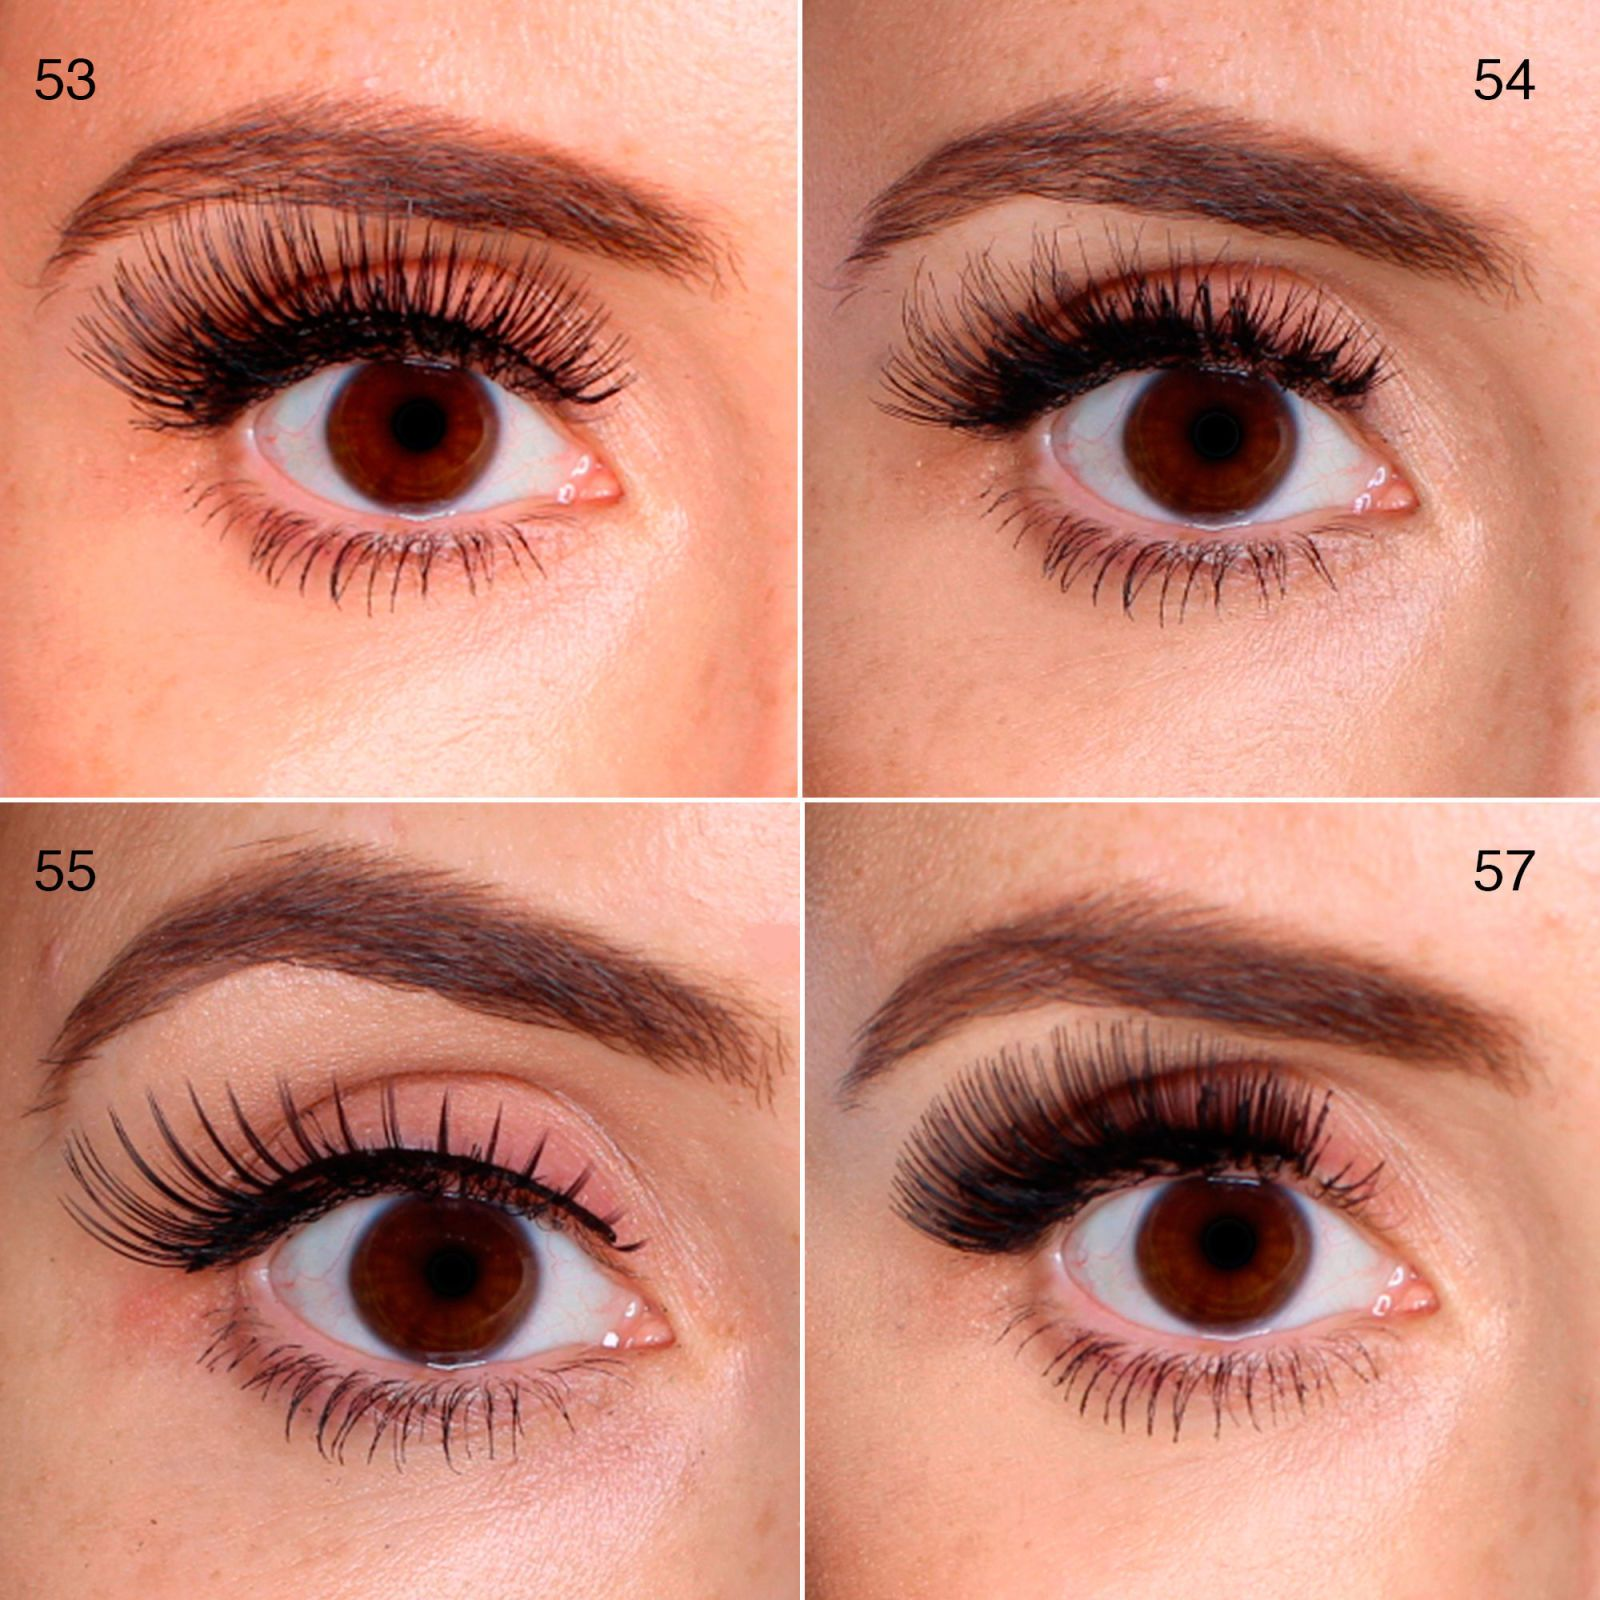 5507bbadb9e 100 false lashes tested on ONE eye: picture reviews 54) kiss true volume  ritzy